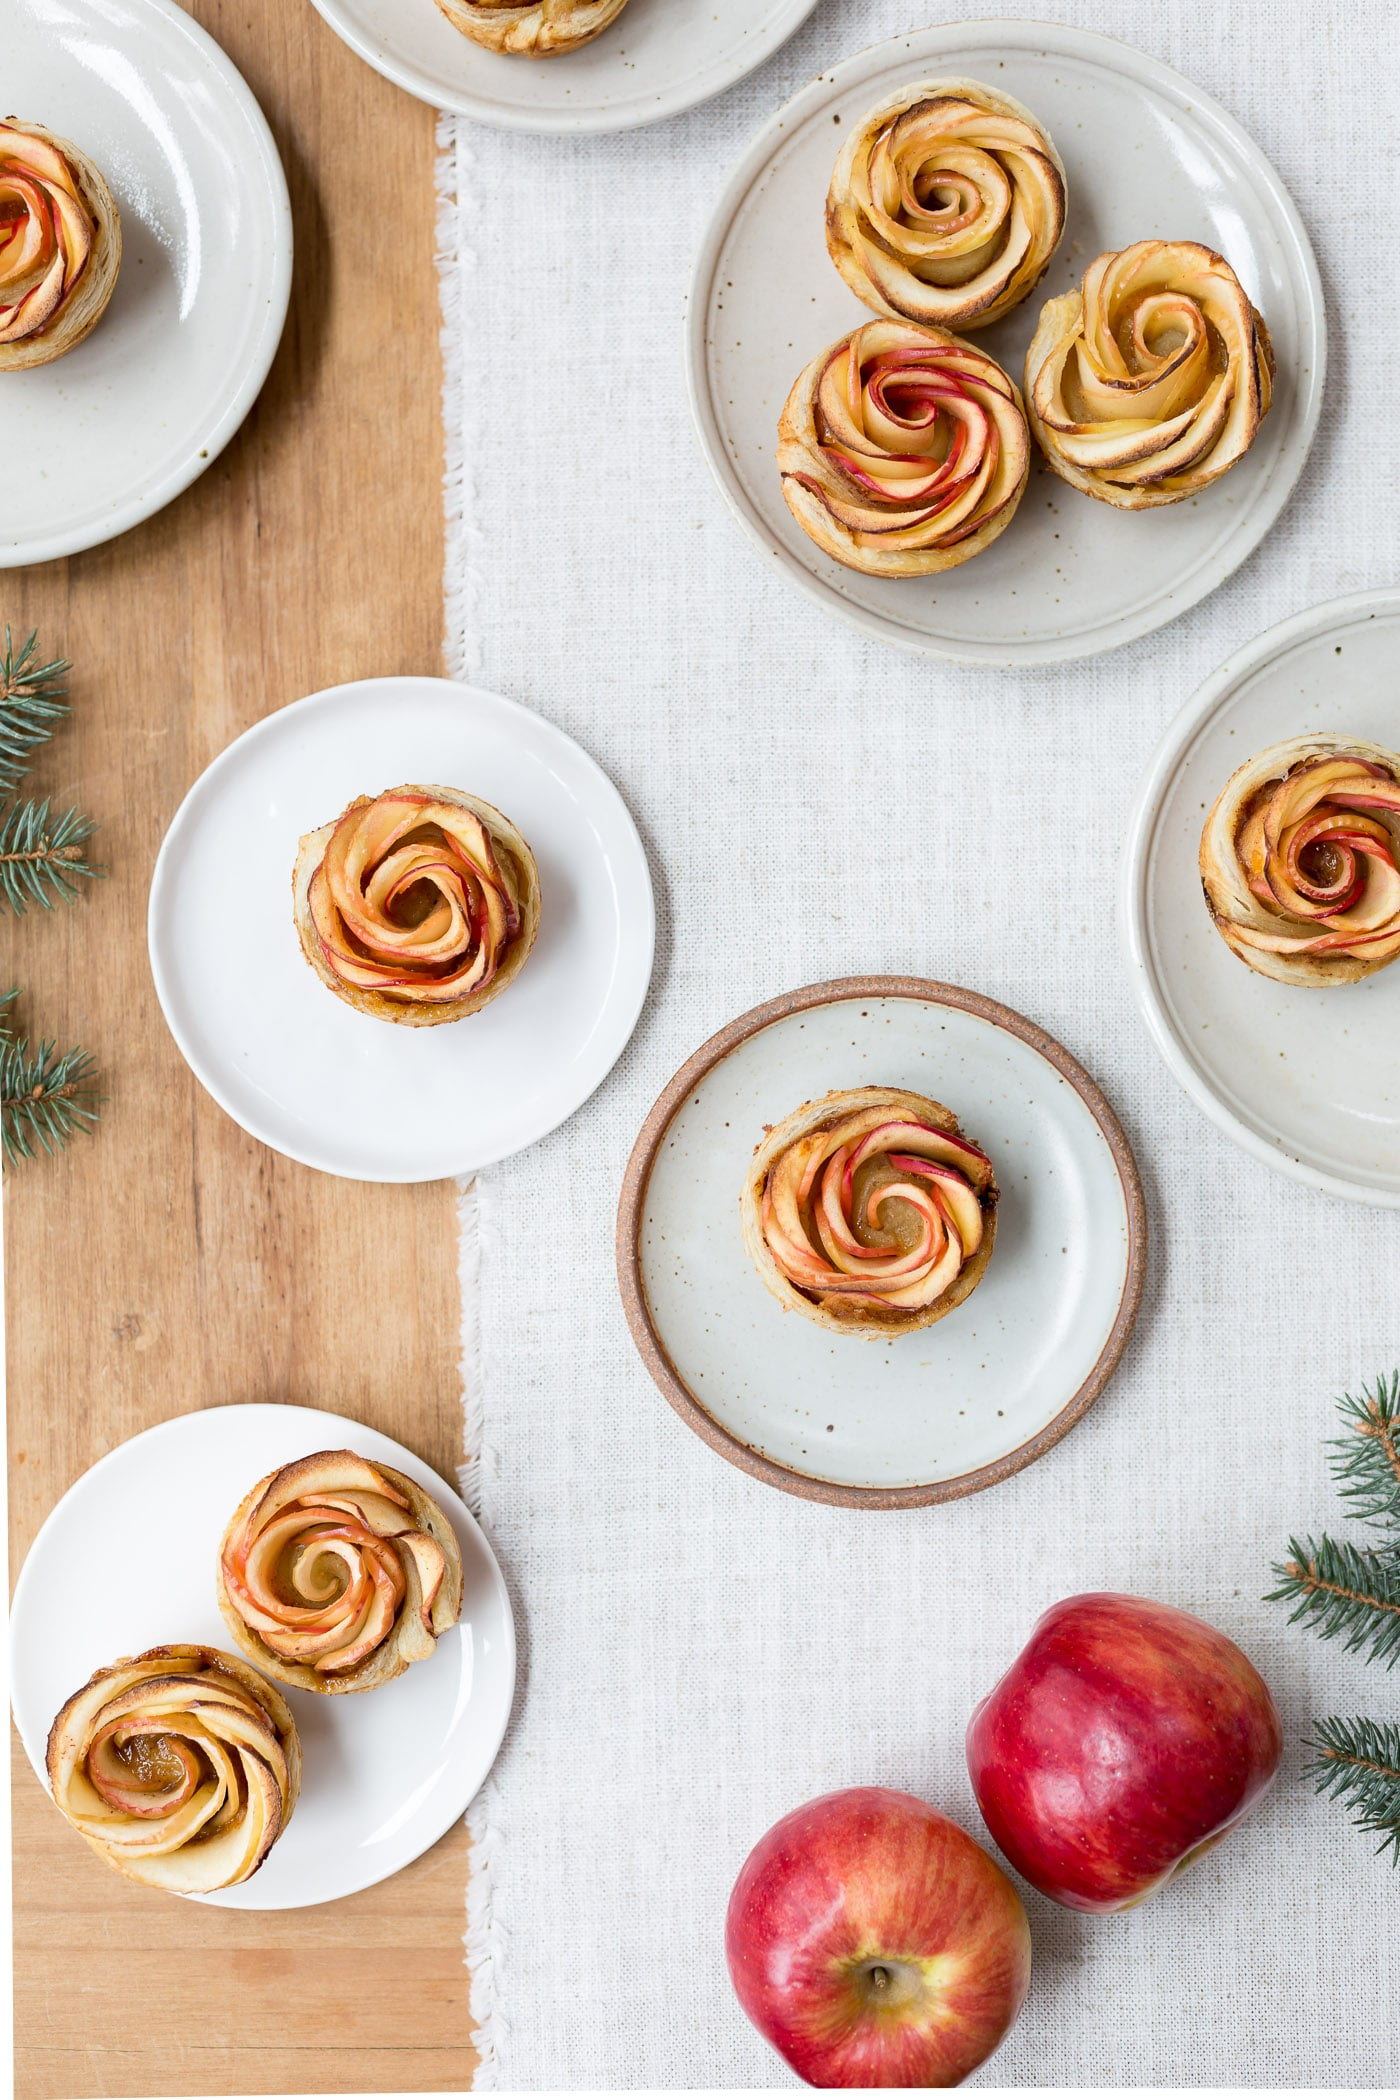 How to make apple roses - Showcasing freshly baked apple roses served on small plates.